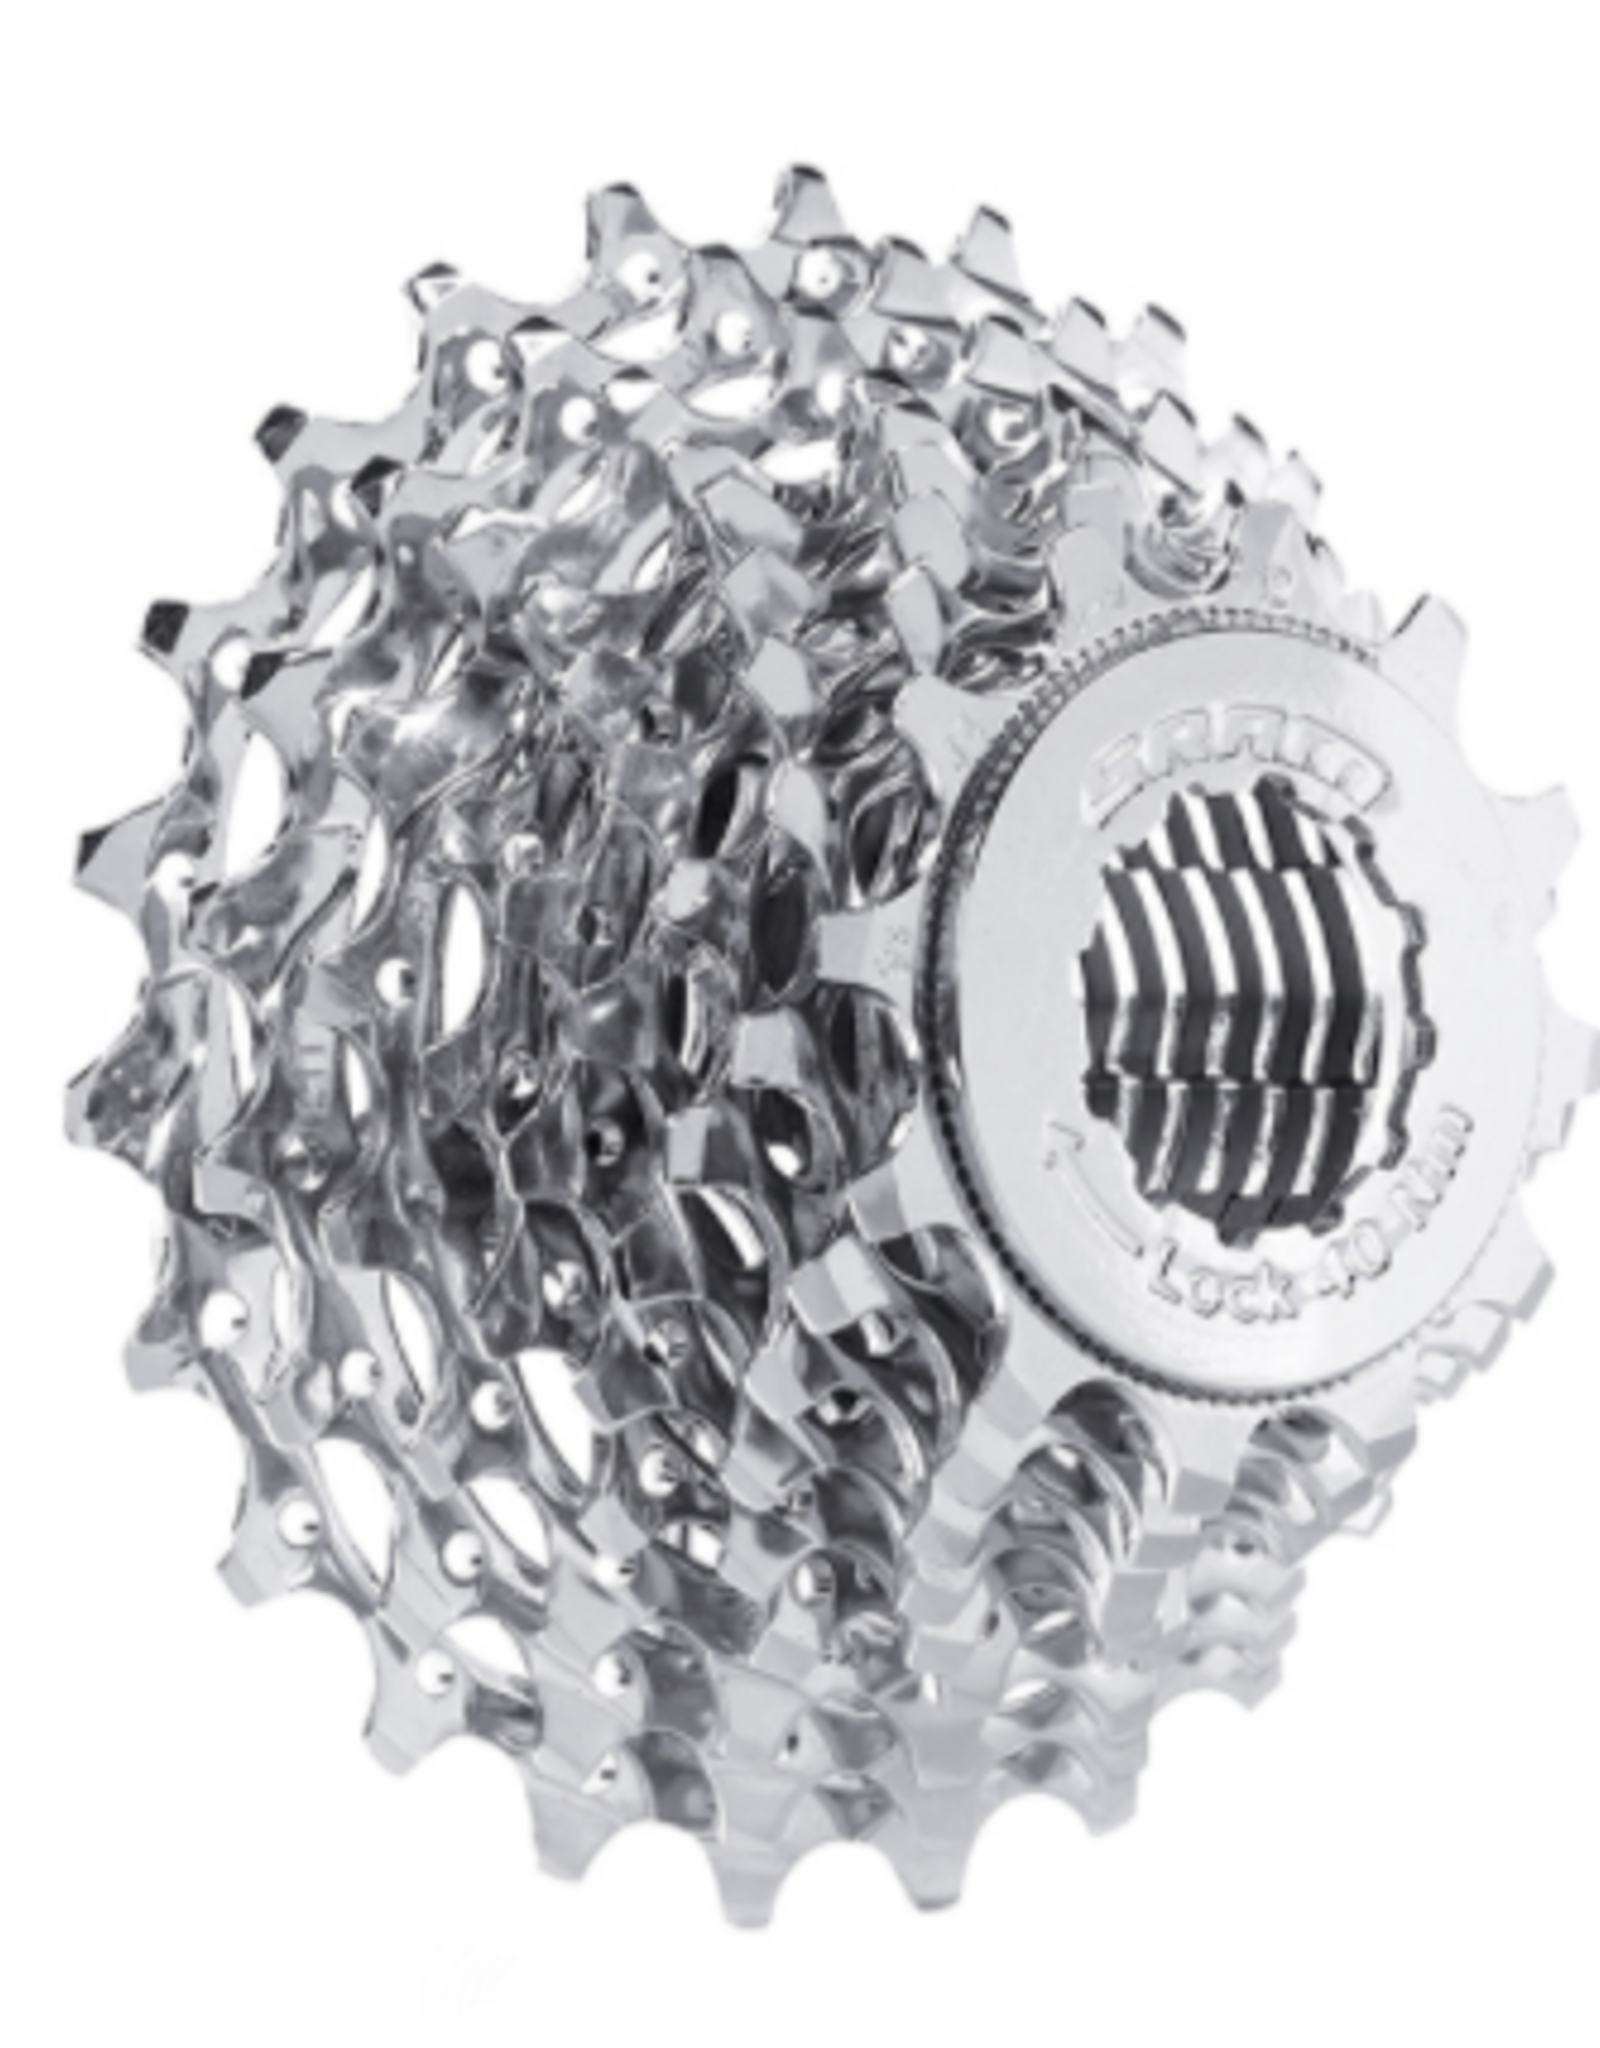 SRAM PG950 9 speed cassette 11-28